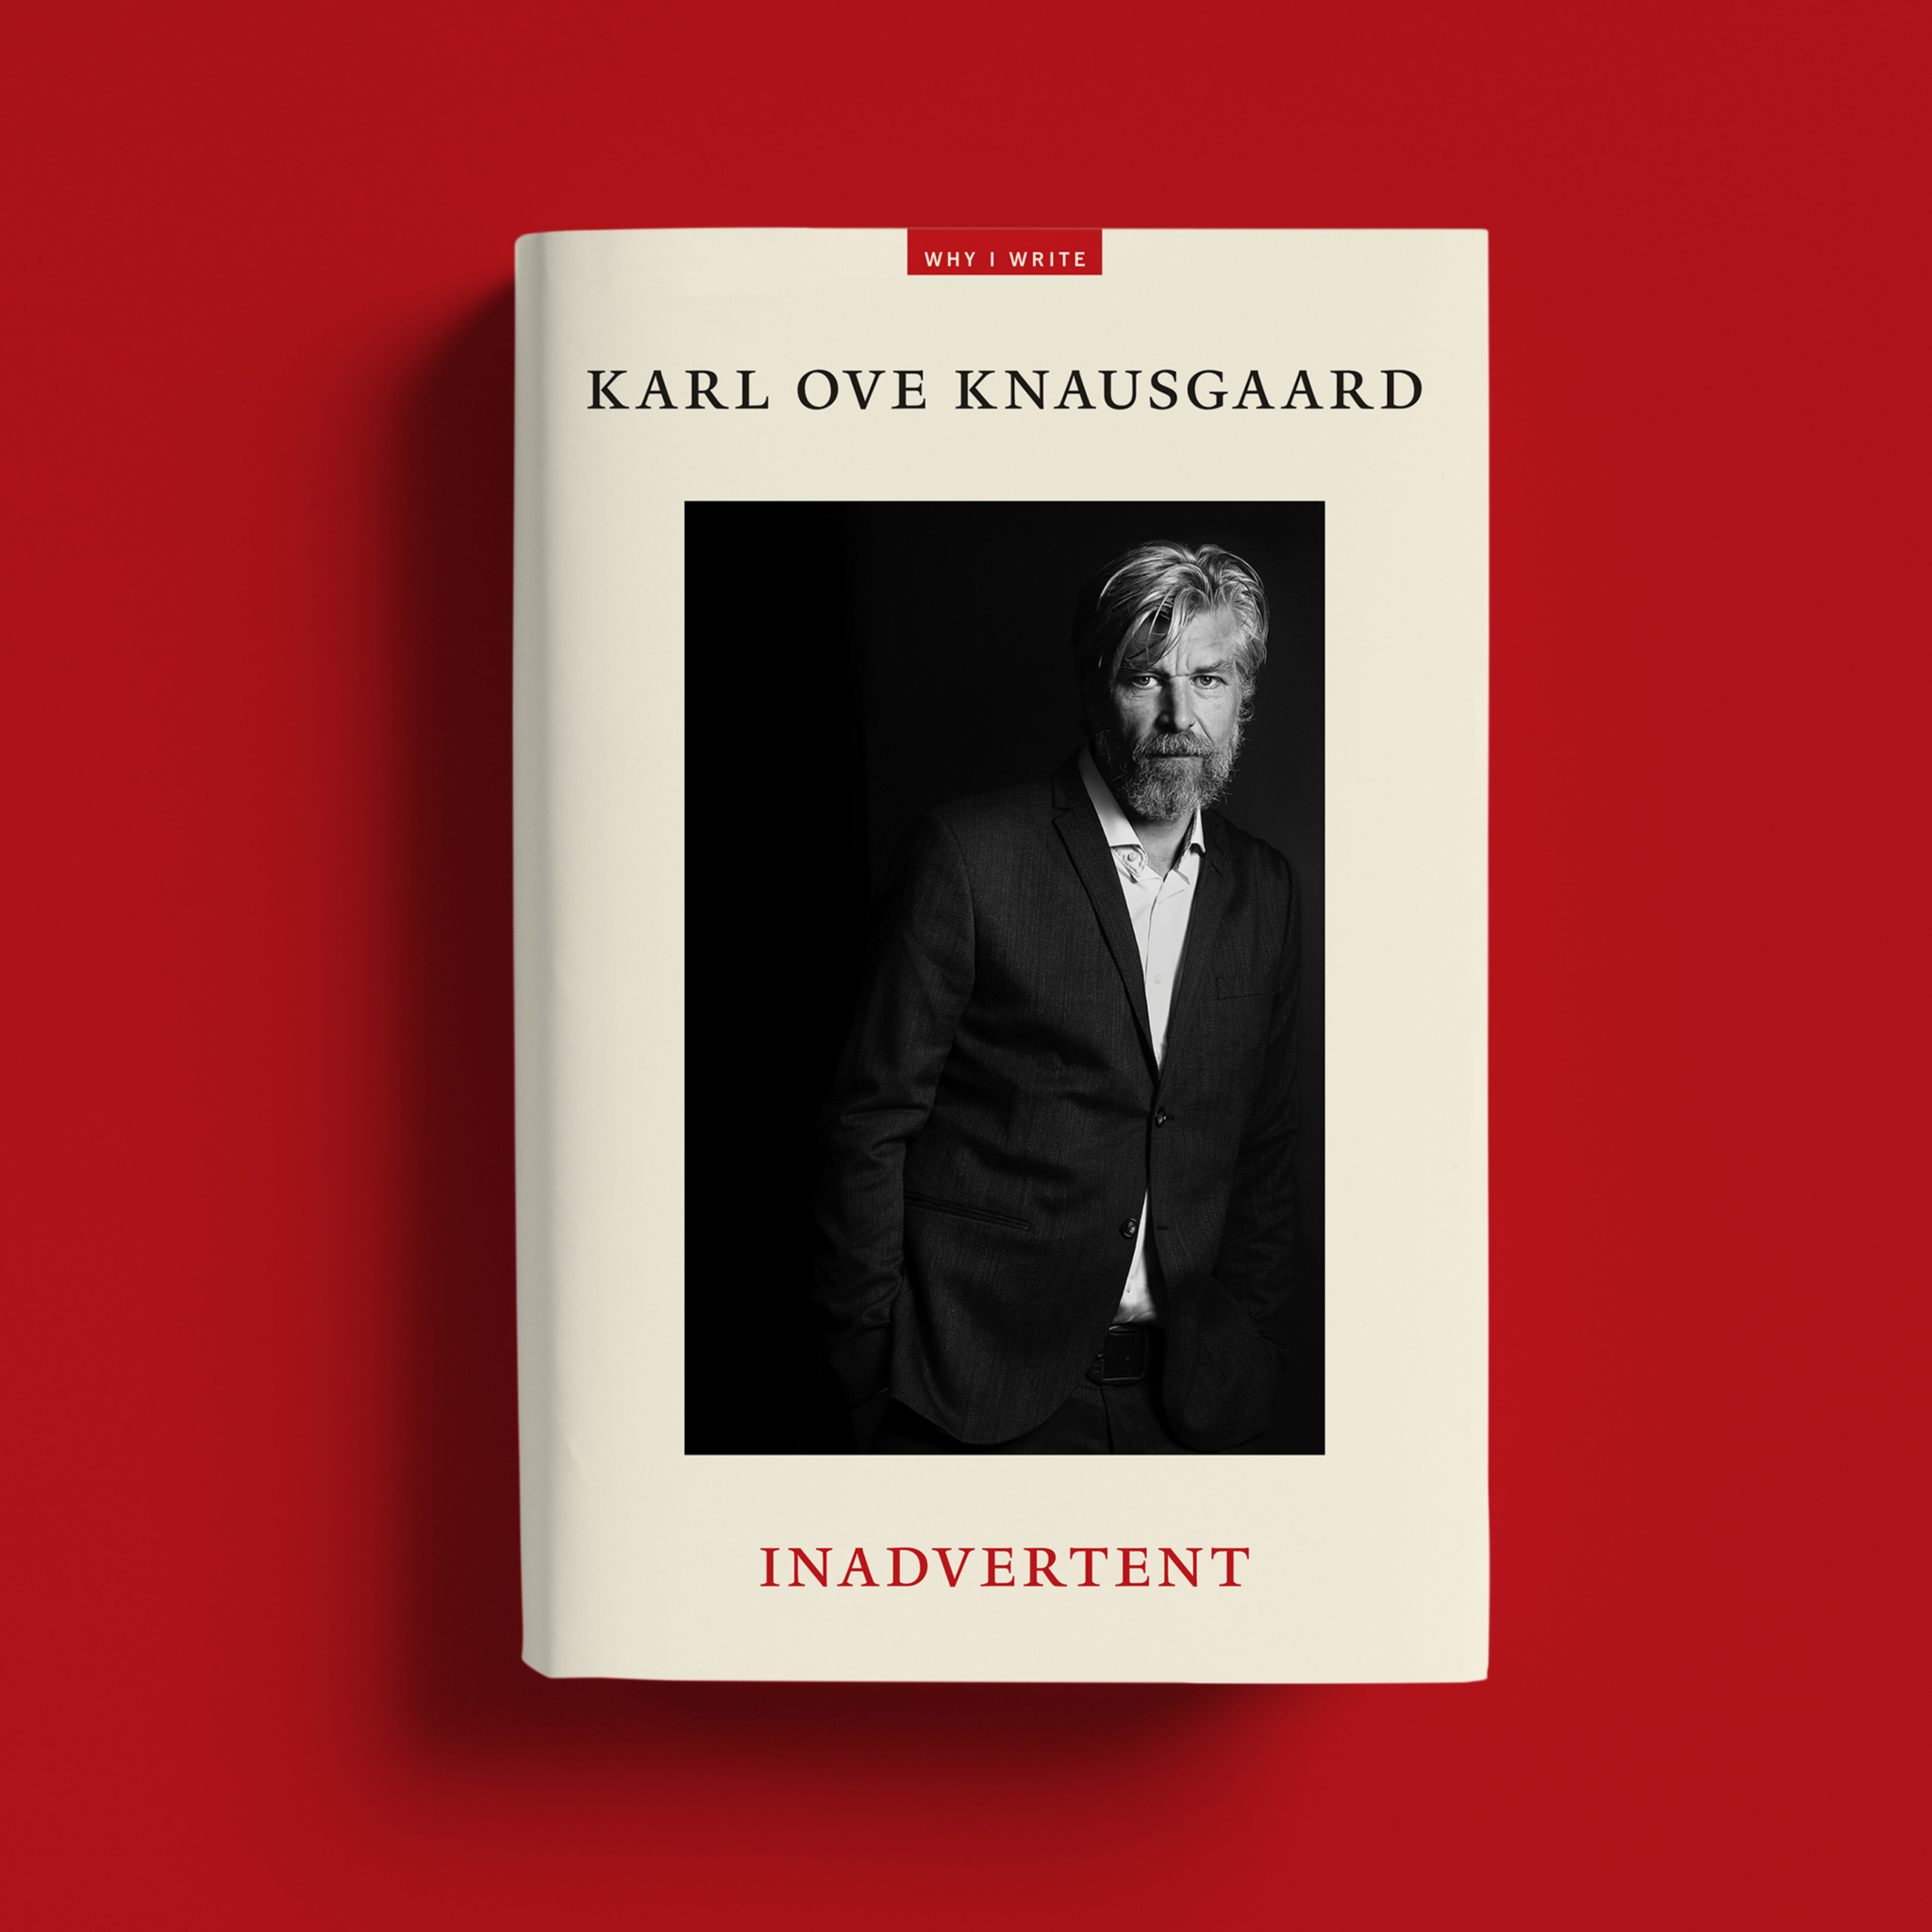 Yale University Press publishes INADVERTENT by Karl Ove Knausgaard